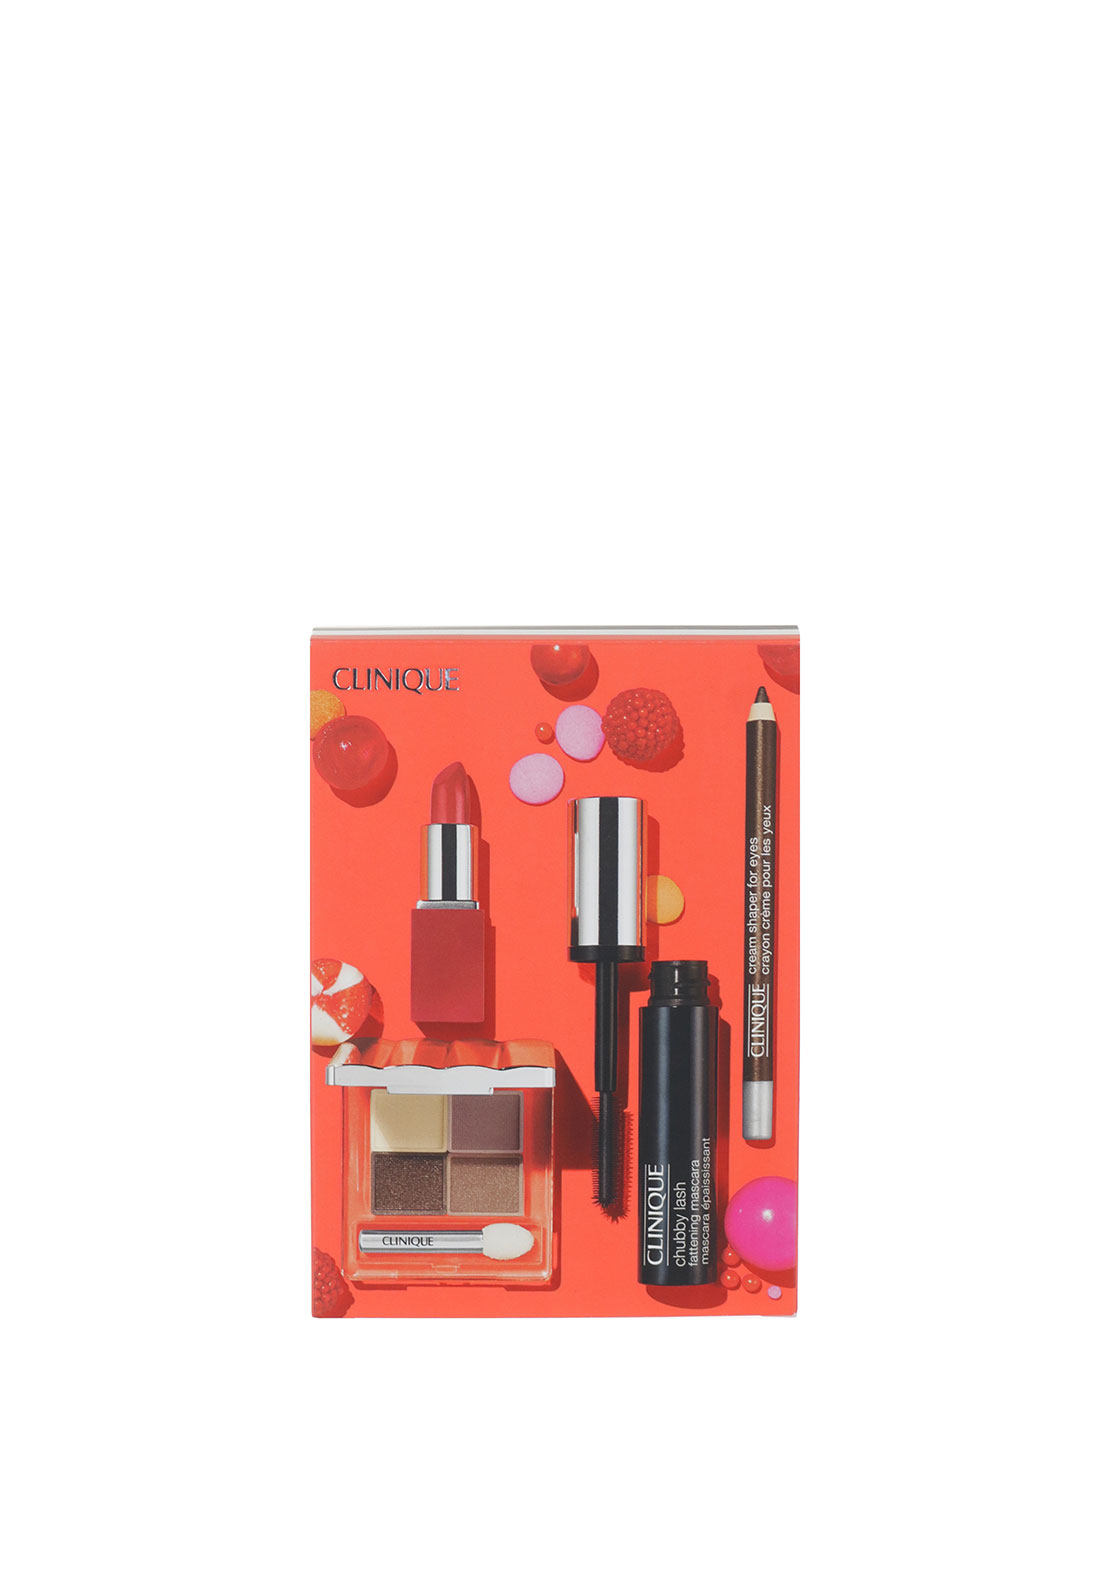 Clinique Cherry On Top Make Up Gift Set